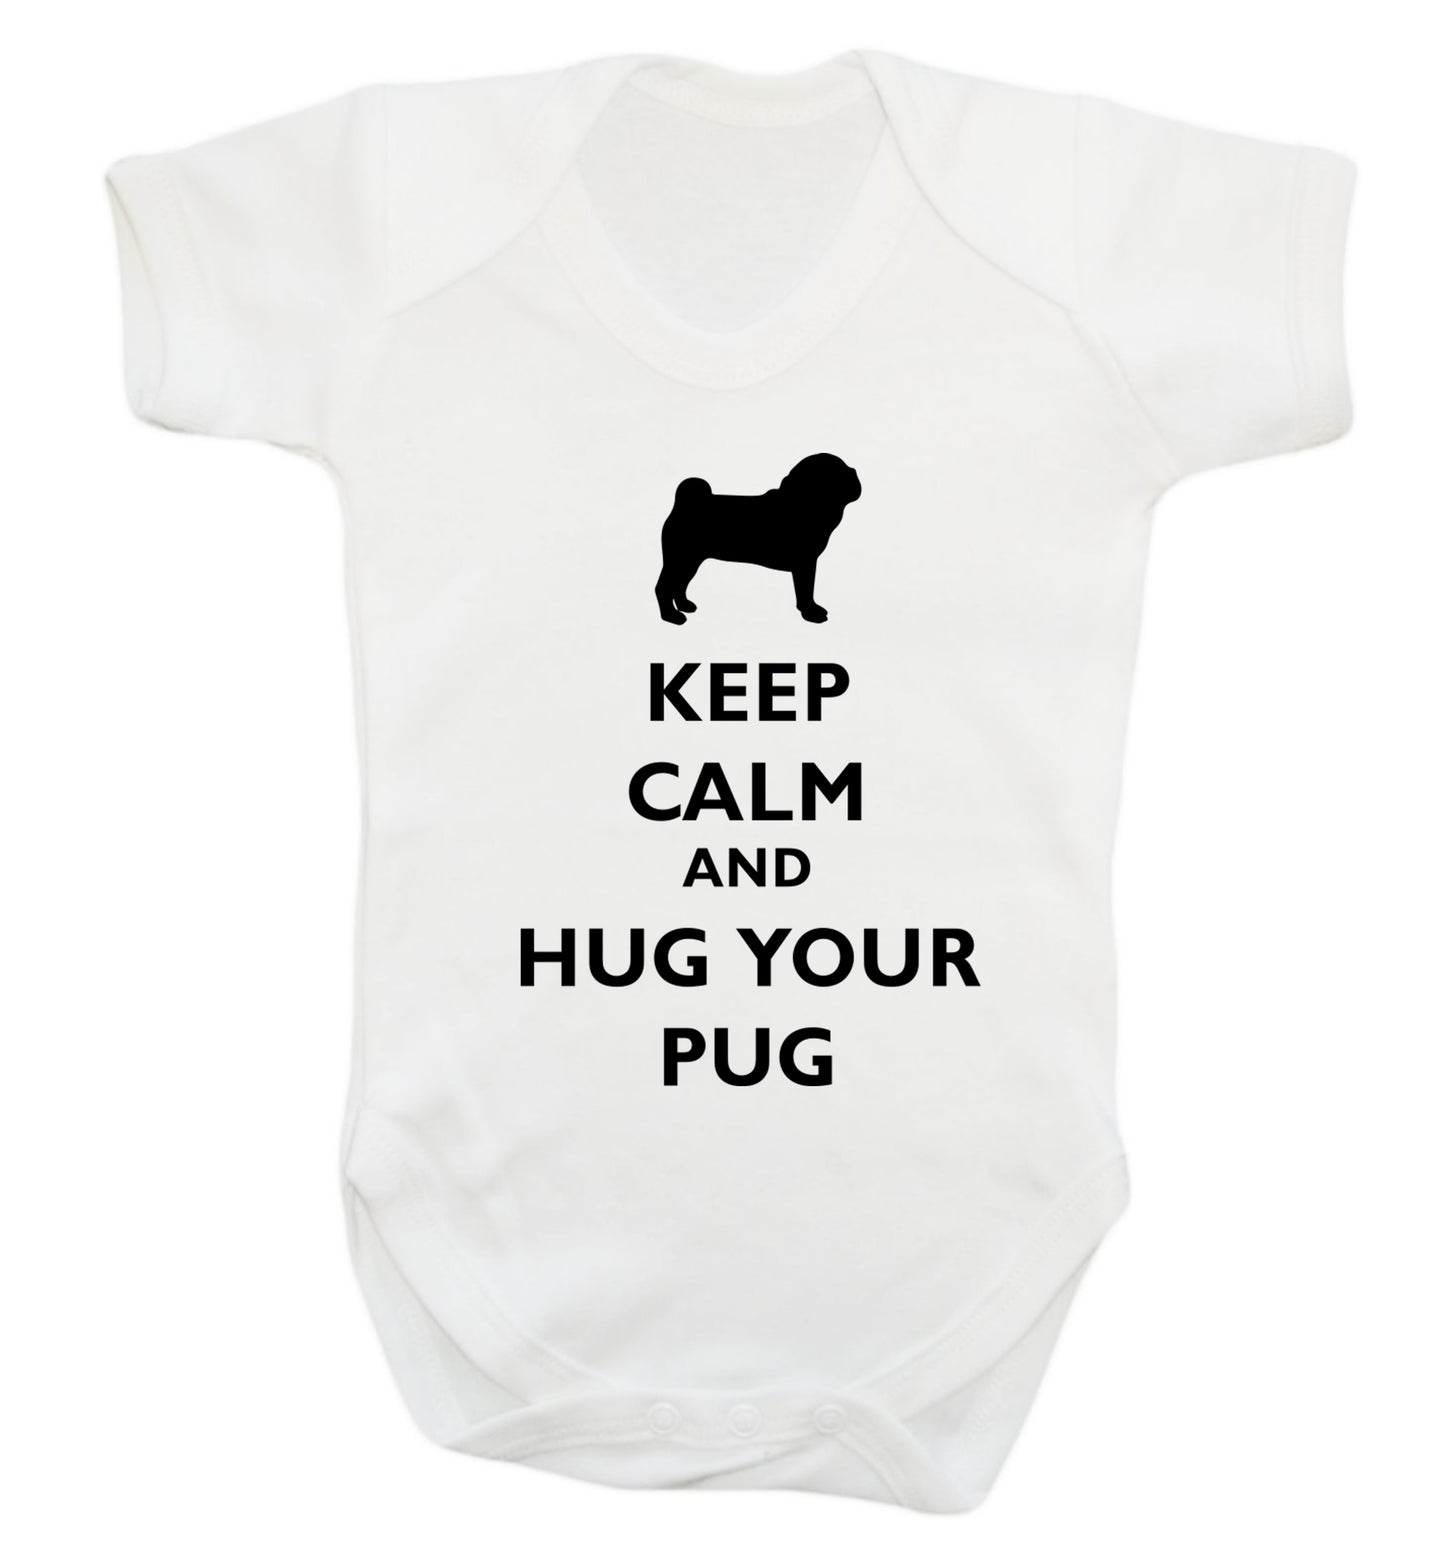 Keep calm and hug your pug Baby Vest white 18-24 months